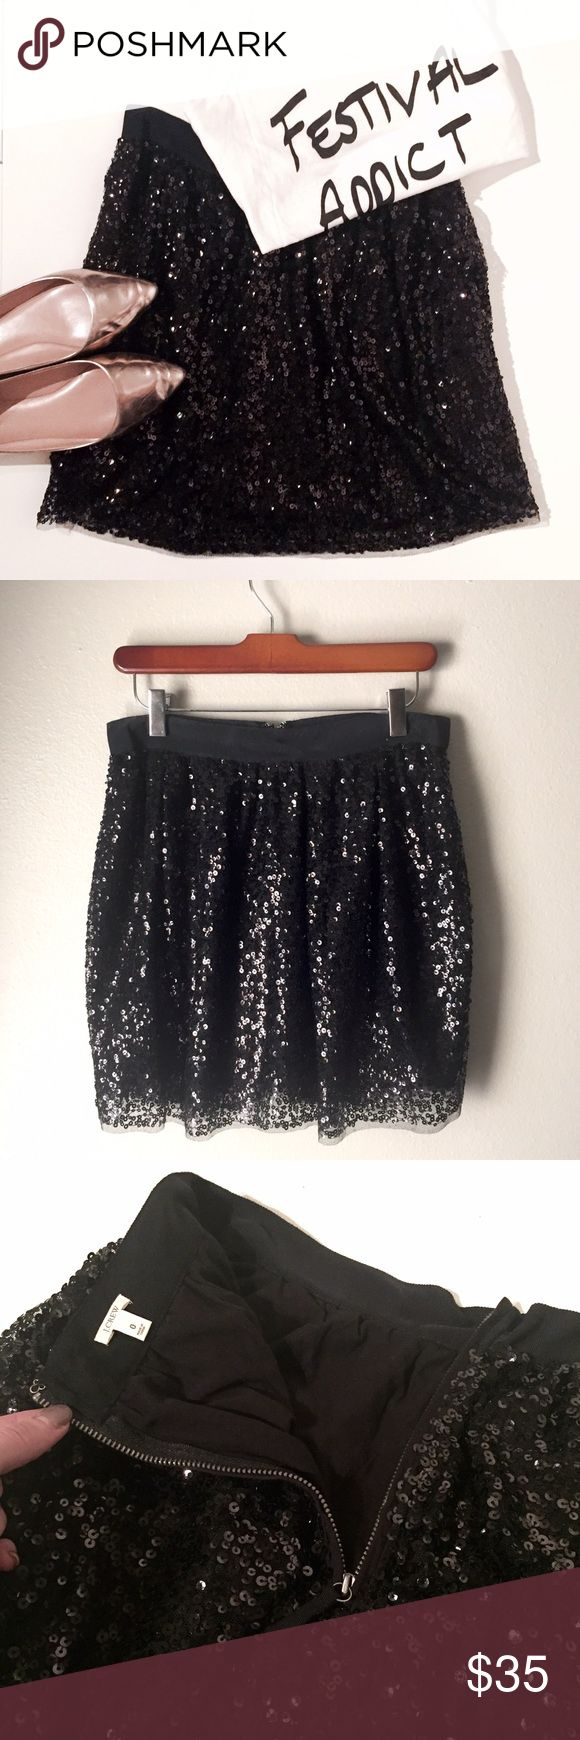 """J. Crew Sequin Mini Skirt Excellent condition! Only worn a couple times then dry cleaned. This skirt is super sexy and fun but also comfortable! It is lined inside with modal cotton which is very soft. It's very flowy, not tight or form fitting. The waistband is fitted though, not stretchy. Wear this skirt with t shirts in the summer when going out at night, or pair with tights and boots for fall! 17"""" long from top of waistline to bottom of hem. J. Crew Skirts Mini"""